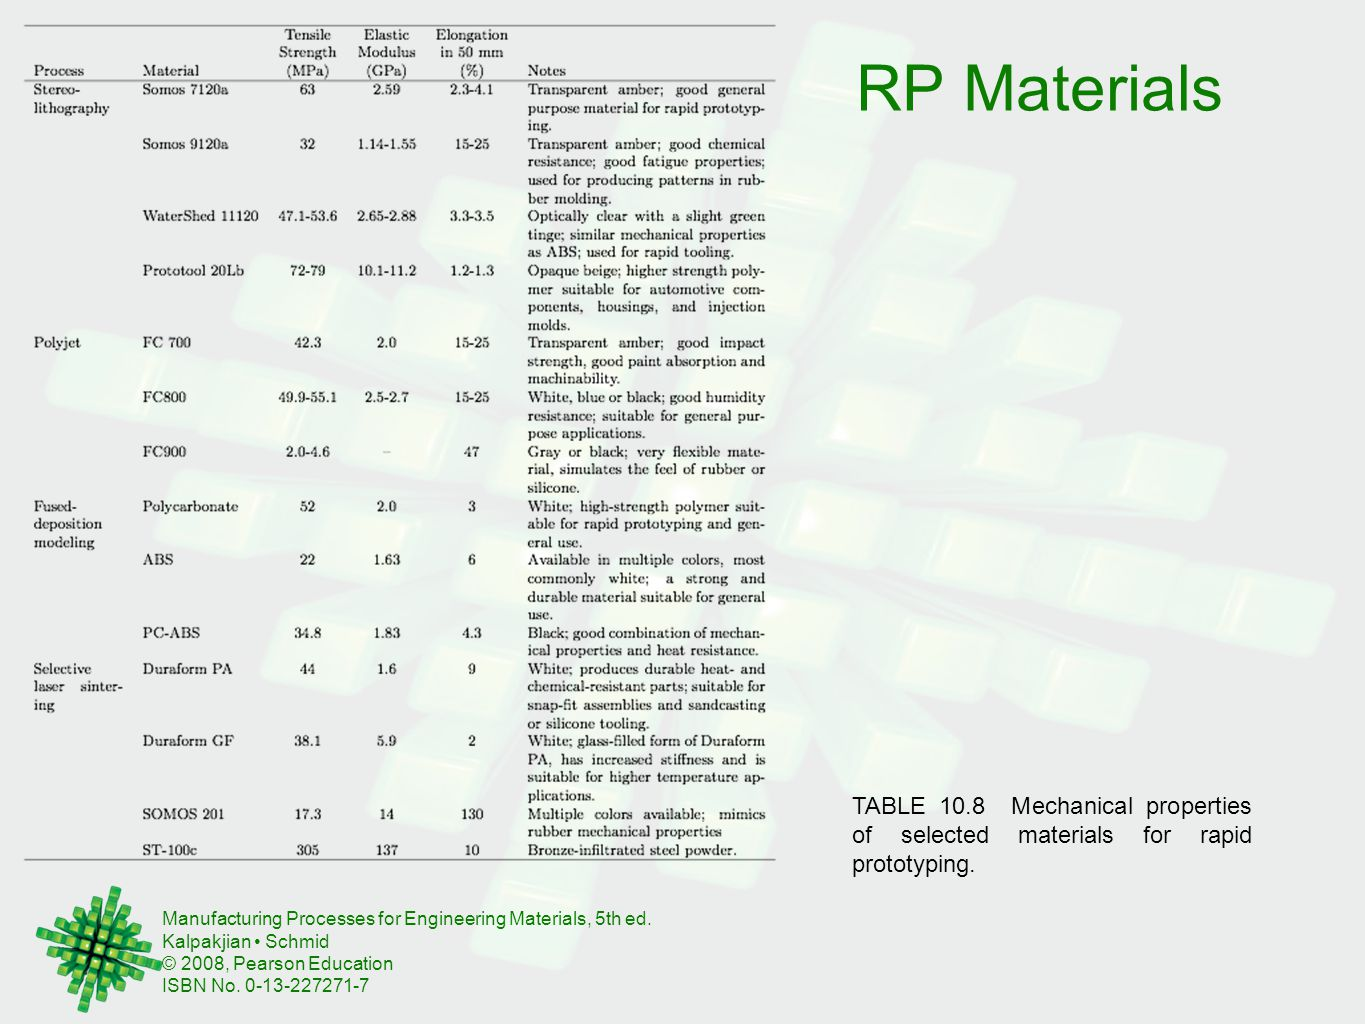 RP Materials TABLE 10.8 Mechanical properties of selected materials for rapid prototyping.